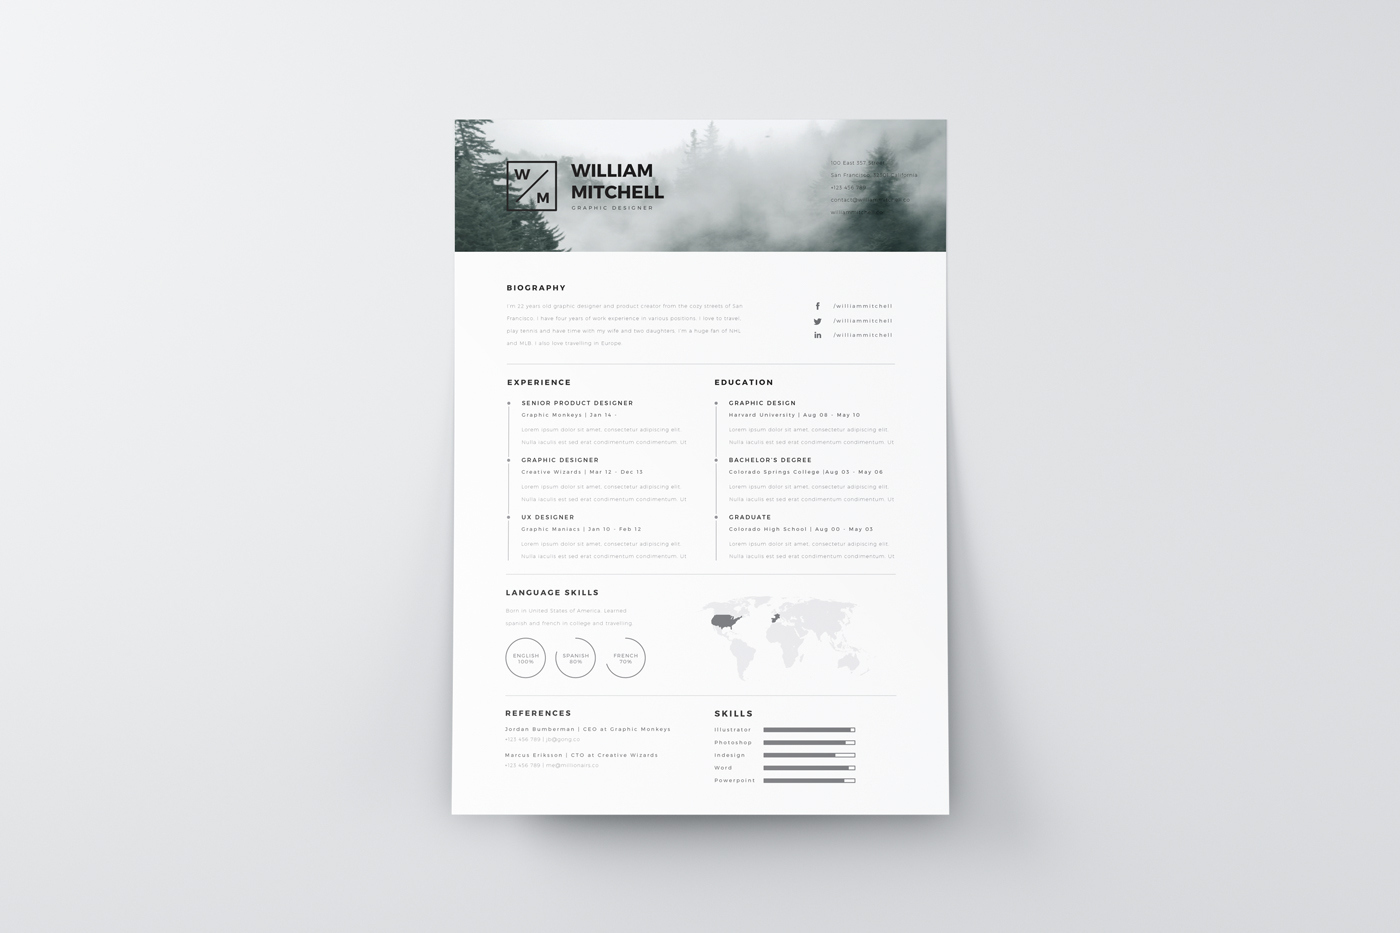 best modern clean resume design gallery of free resume templates for architects 2 best modern clean resume design